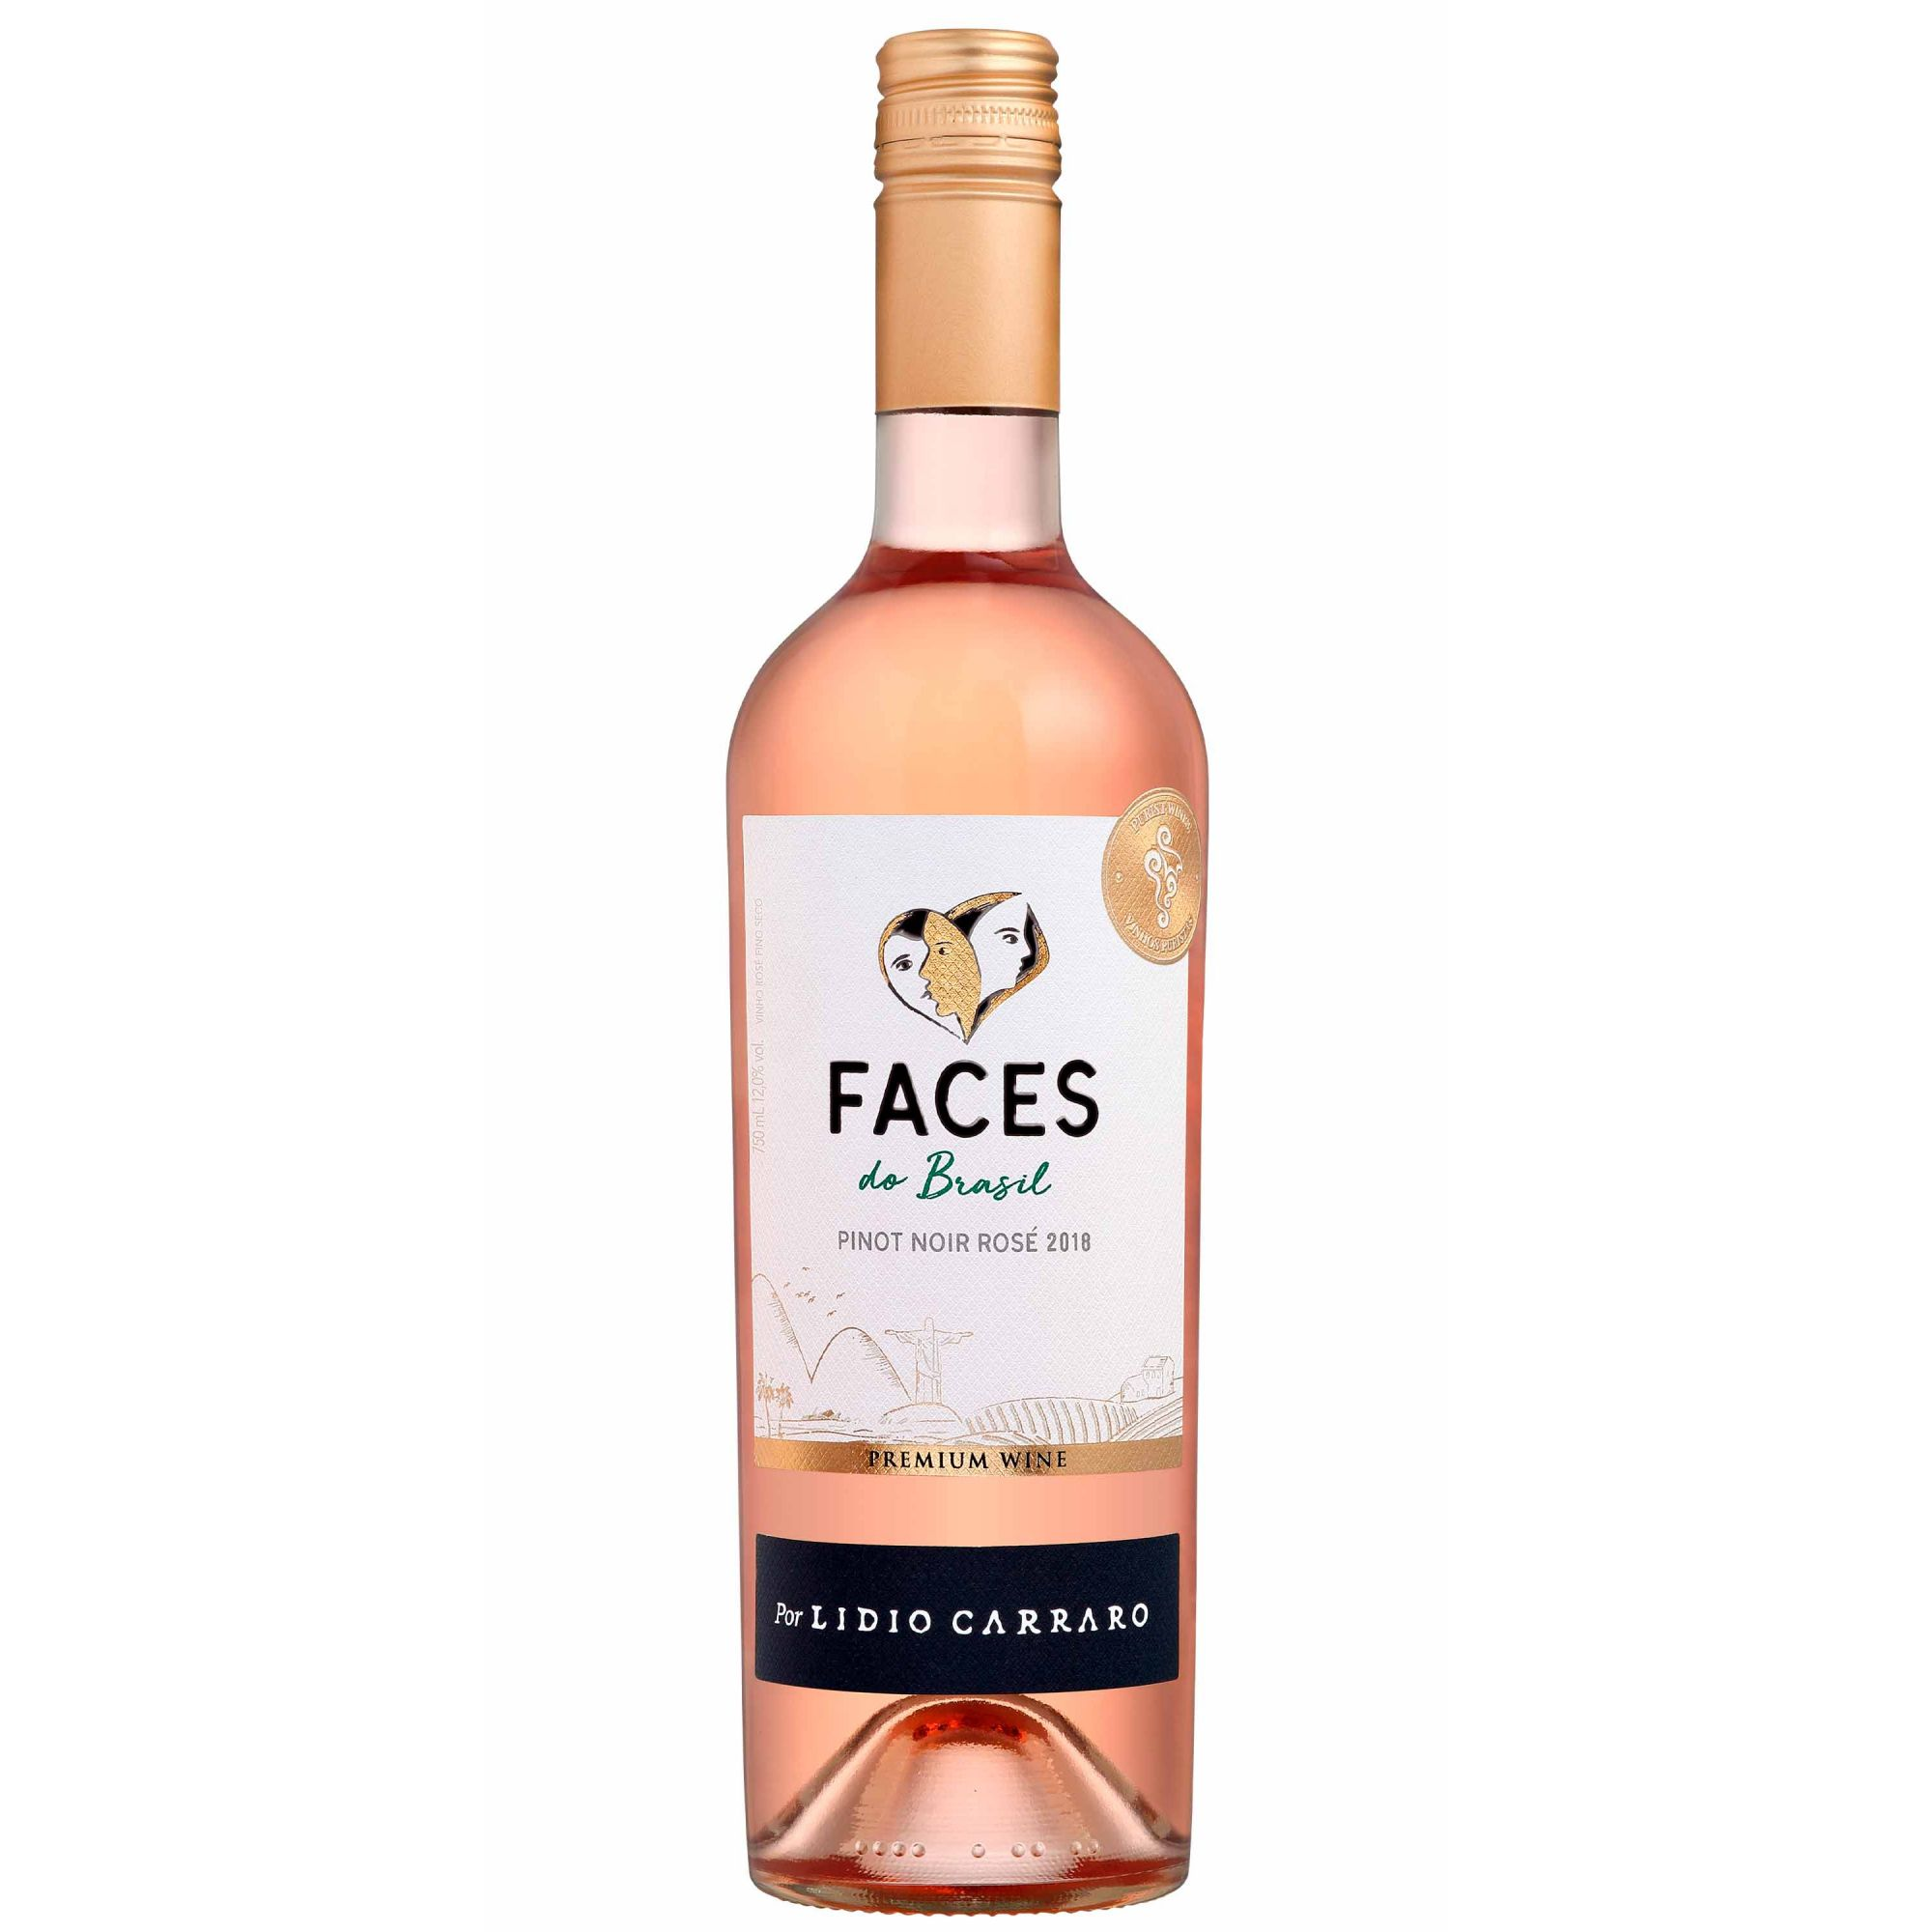 Lidio Carraro Faces do Brasil Rosé